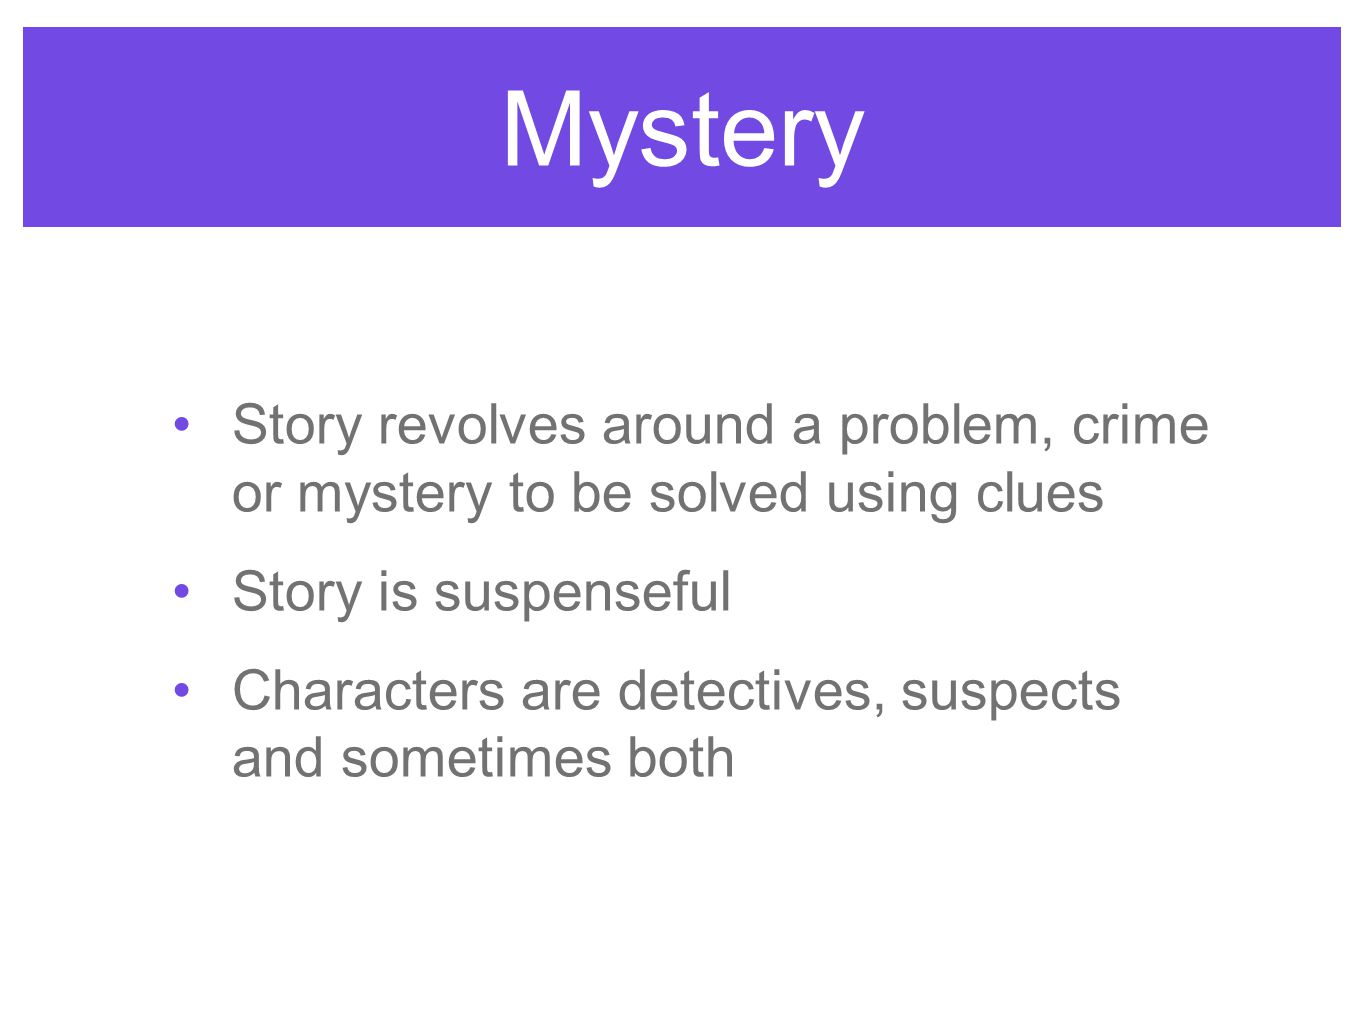 Mystery Story revolves around a problem, crime or mystery to be solved using clues. Story is suspenseful.